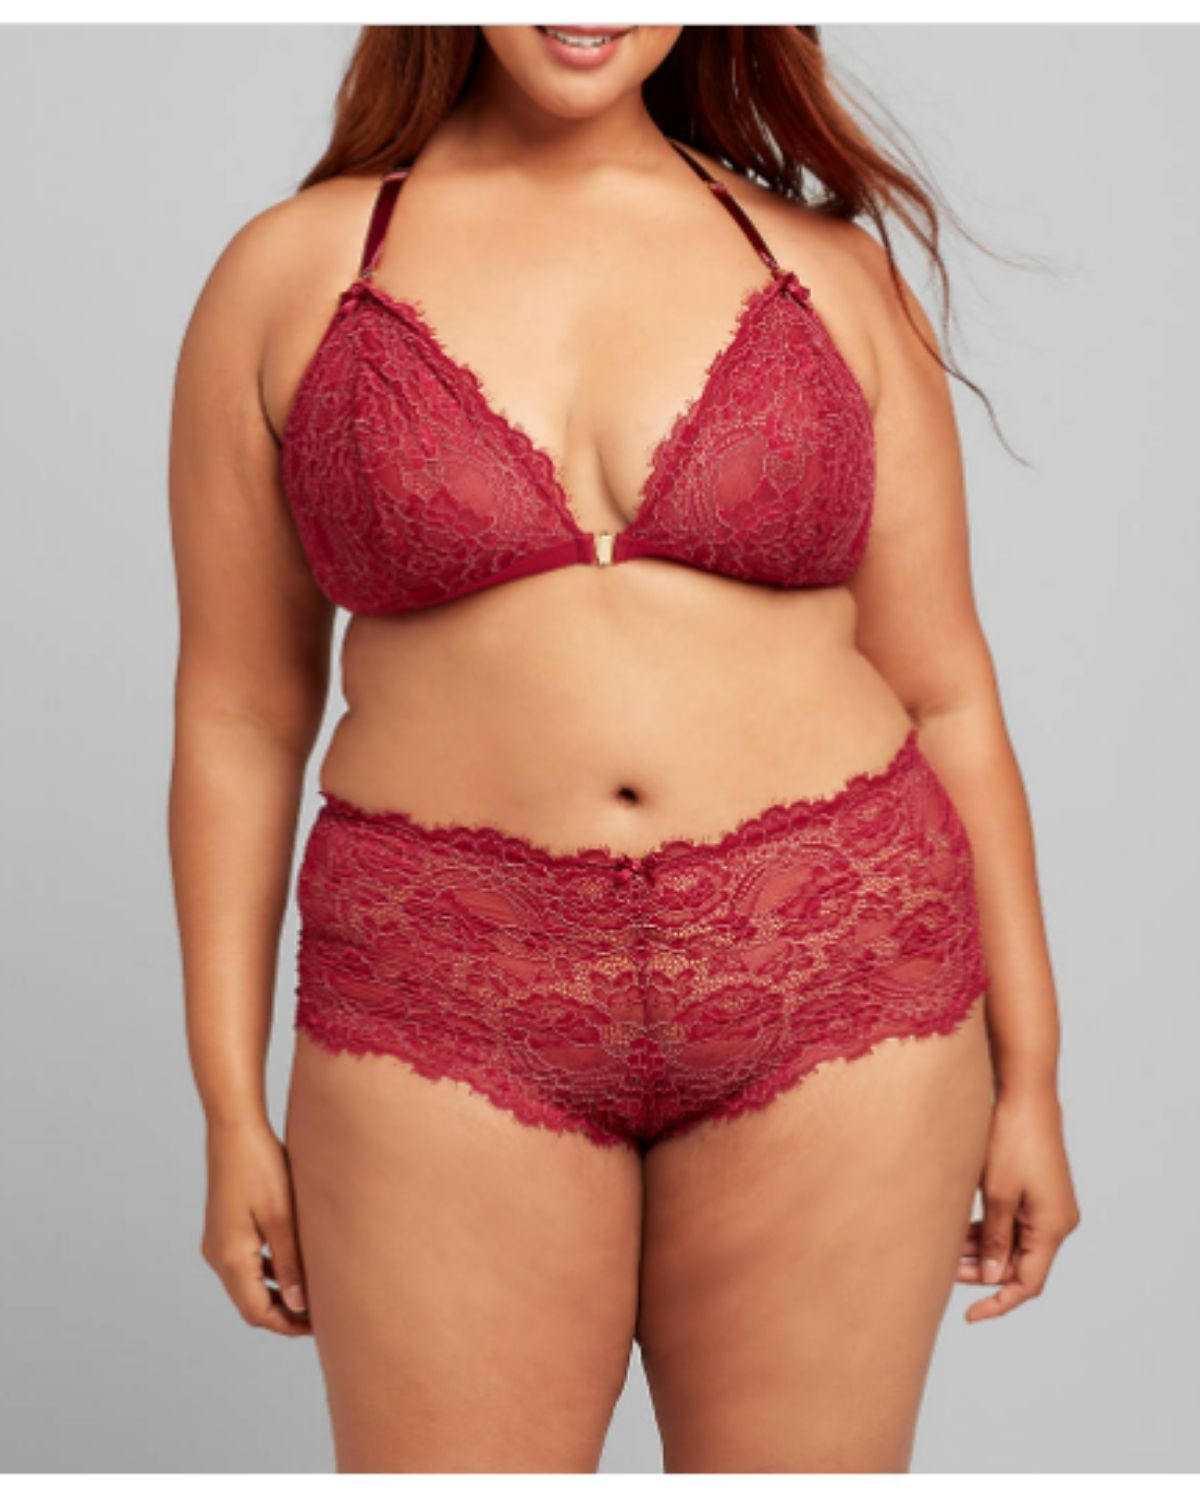 Lingerie Brands | 10 Lingerie Brands that are Cute and Sexy | Pr Forbes